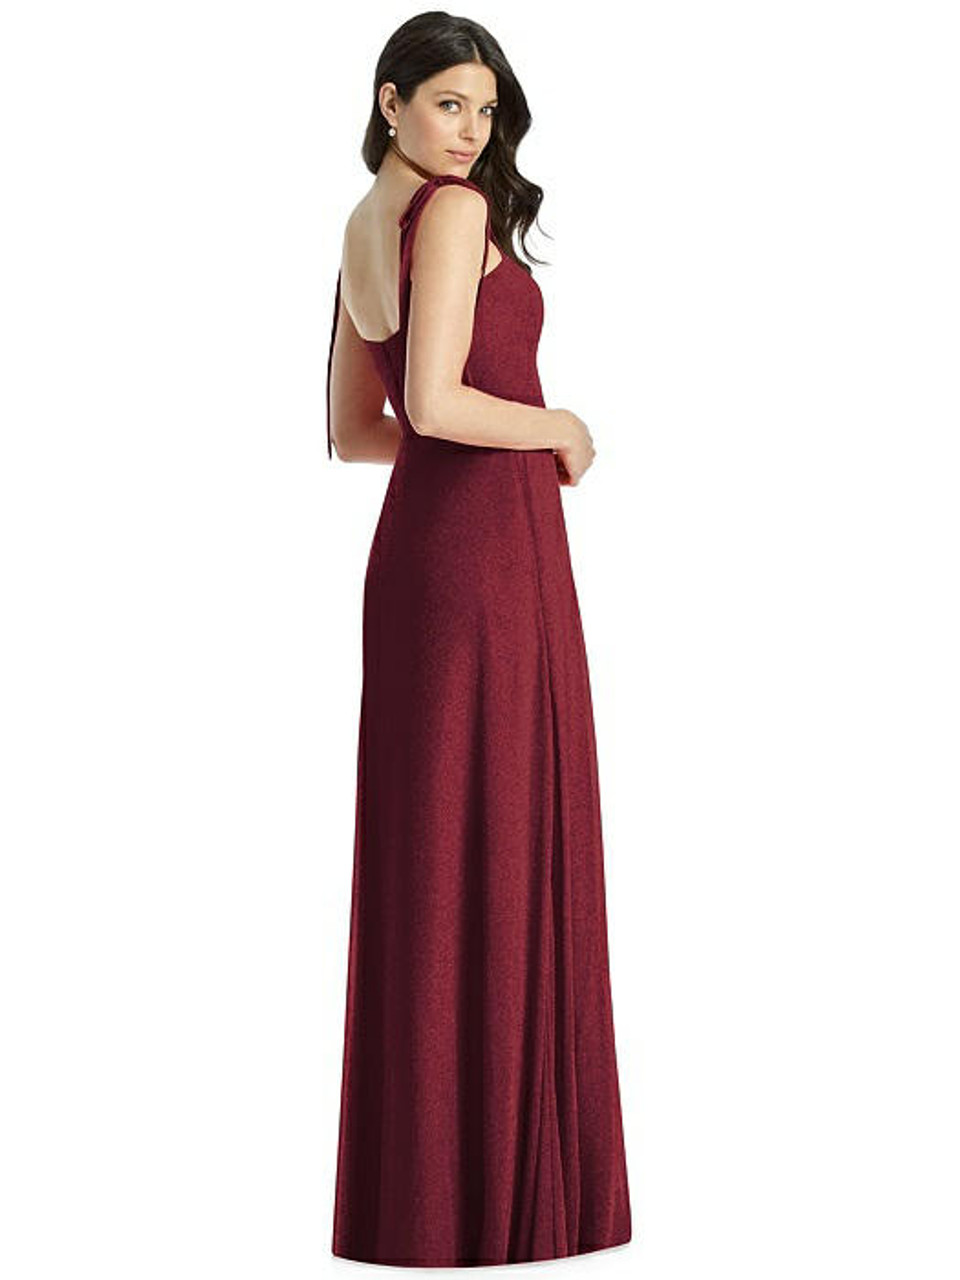 Dessy Shimmer Bridesmaid Dress 3042LS - Lux Shimmer